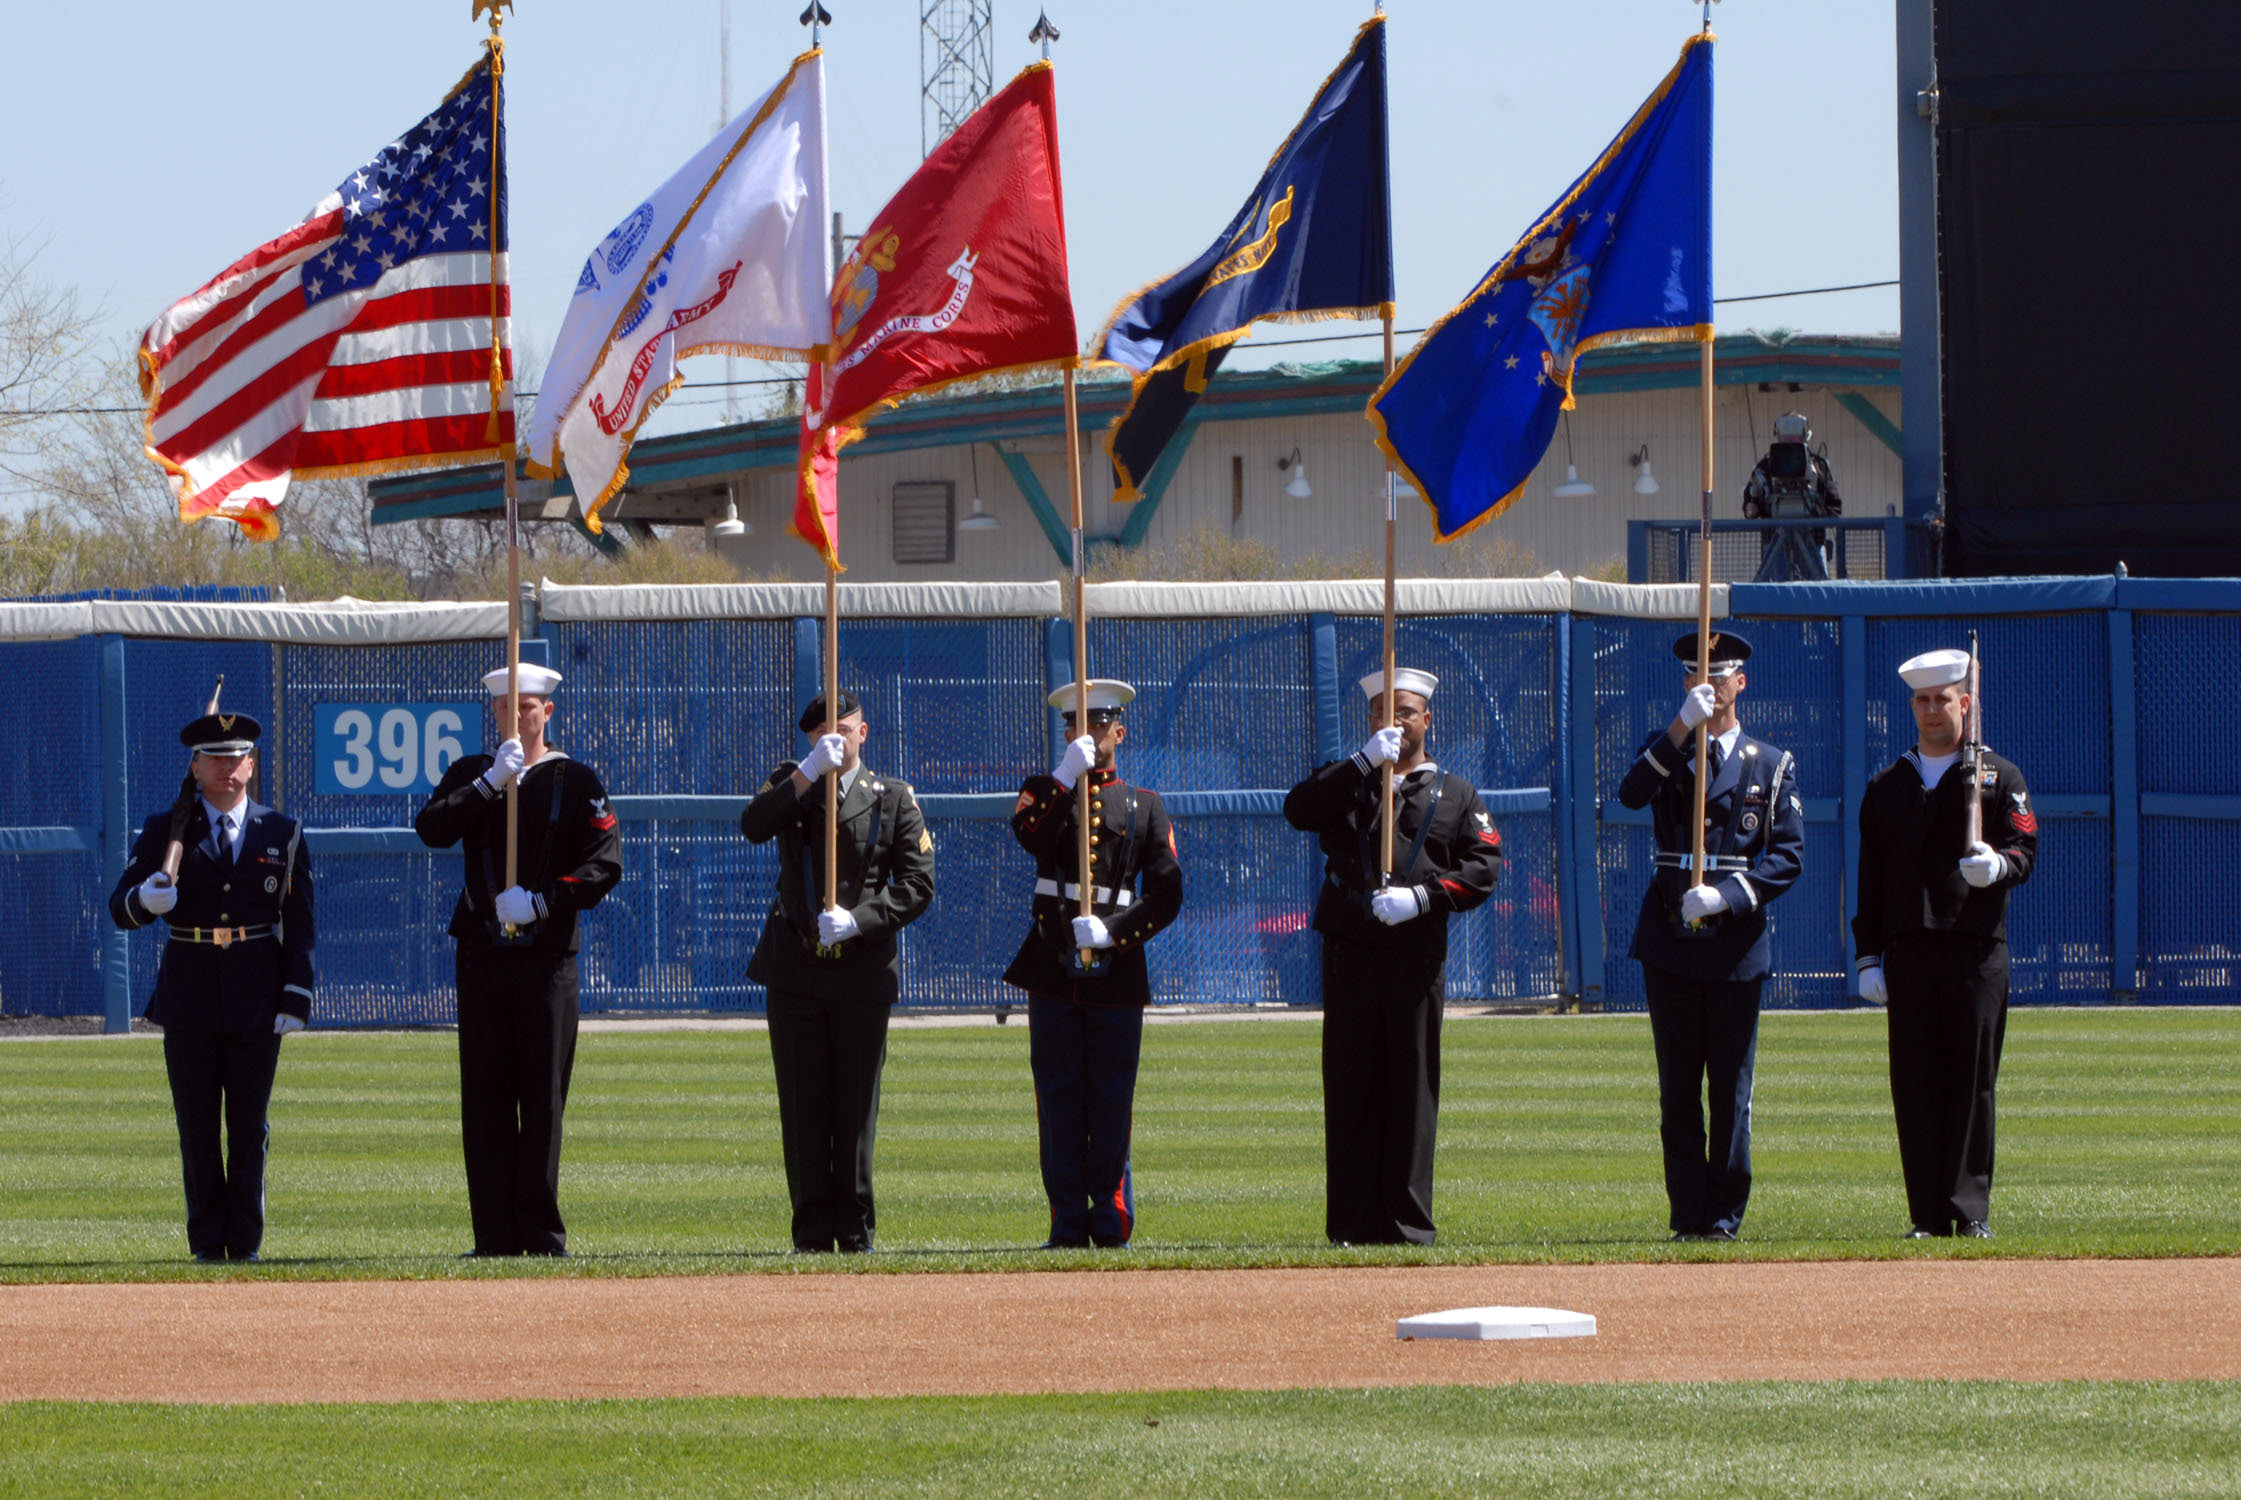 Red Sox & Yankees Submit Bid To Host 2018 Army-Navy Game Featured